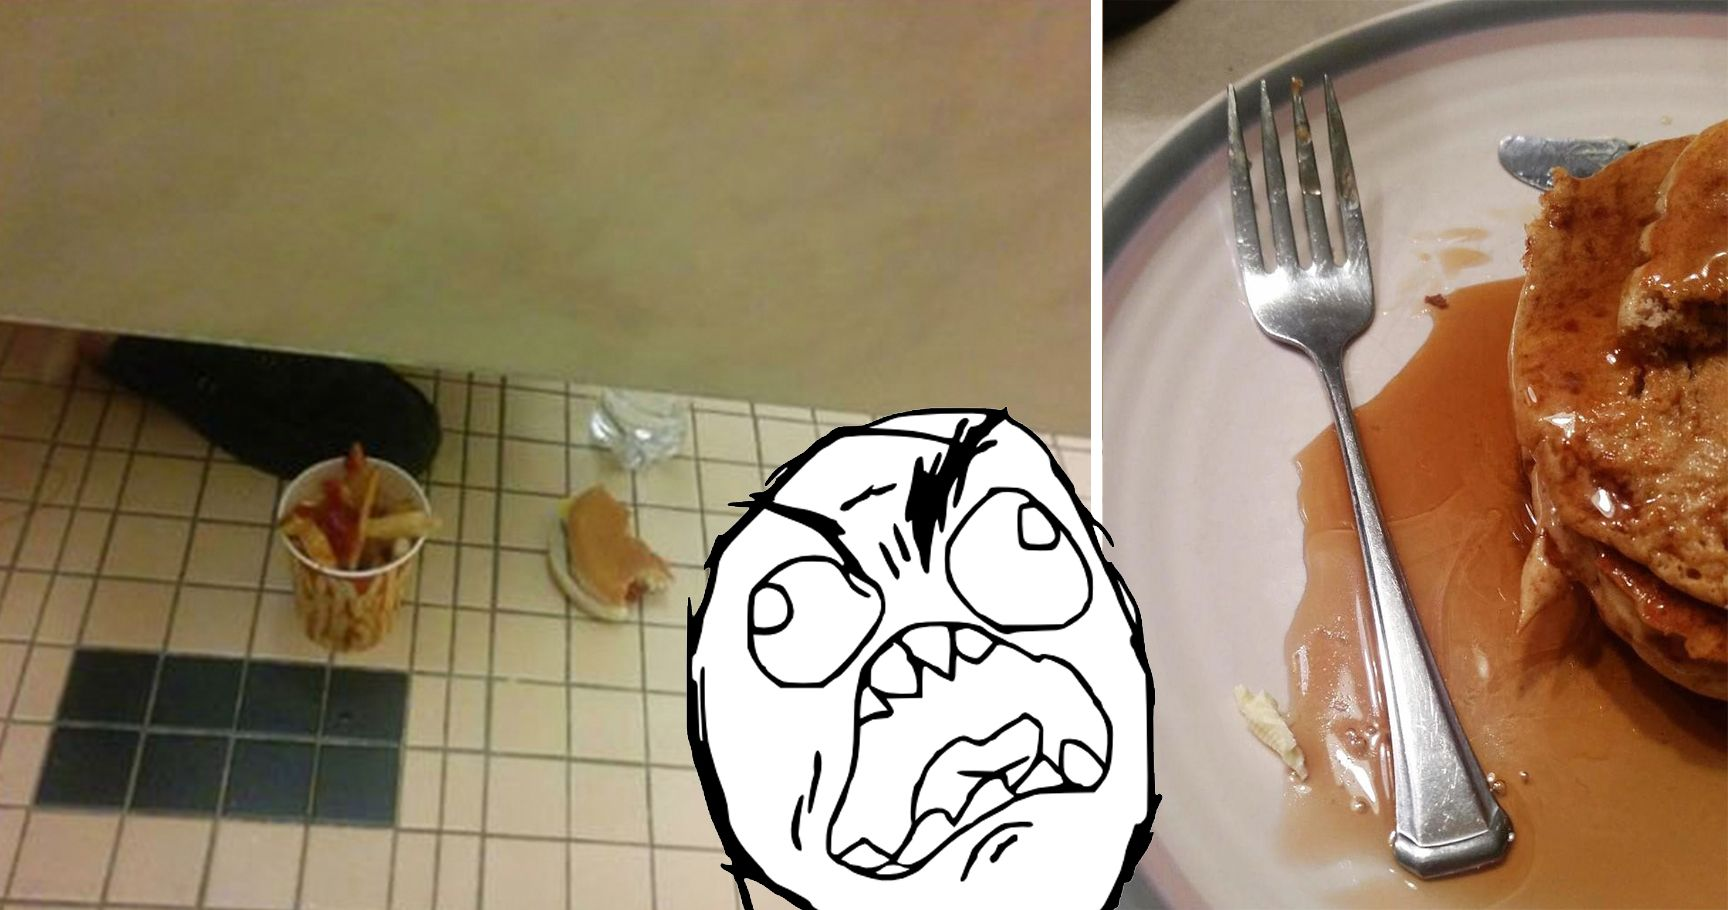 15 Annoying Pictures That Will Infuriate You More Than They Should